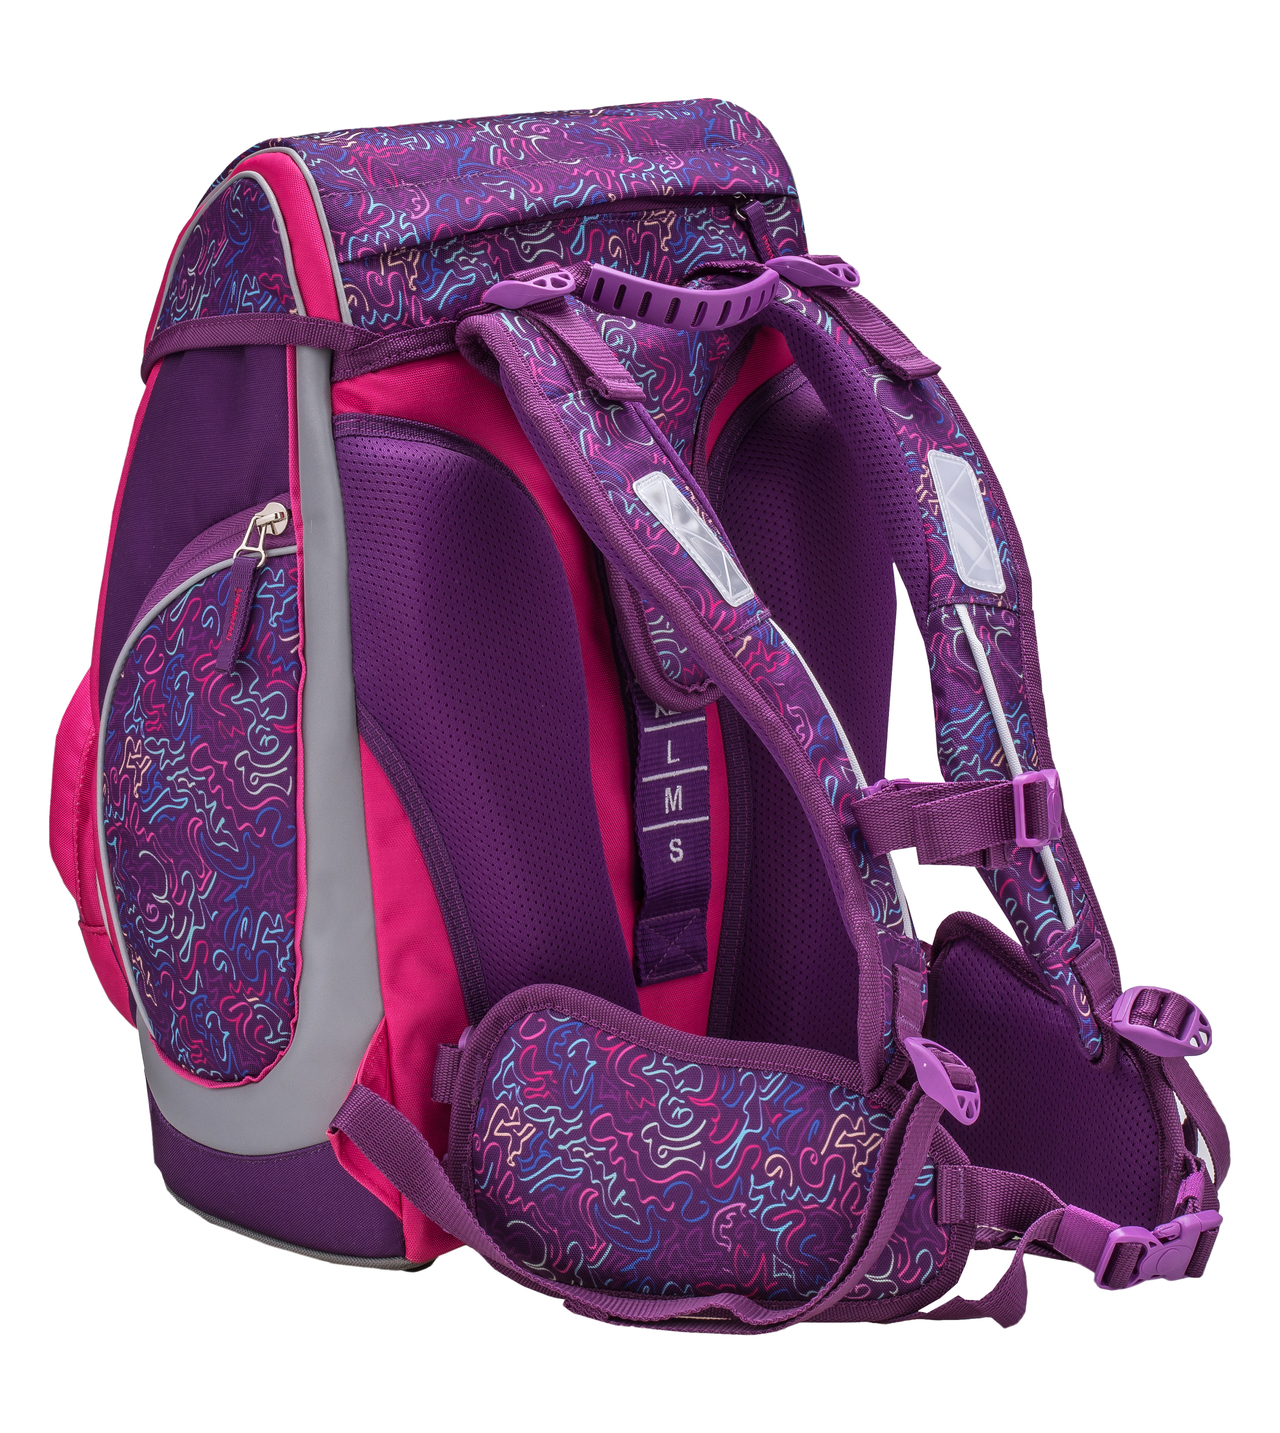 Ранец-рюкзак Belmil Comfy Pack 405-11/683 цвет Pink & Purple Harmony+ дождевик, - фото 4